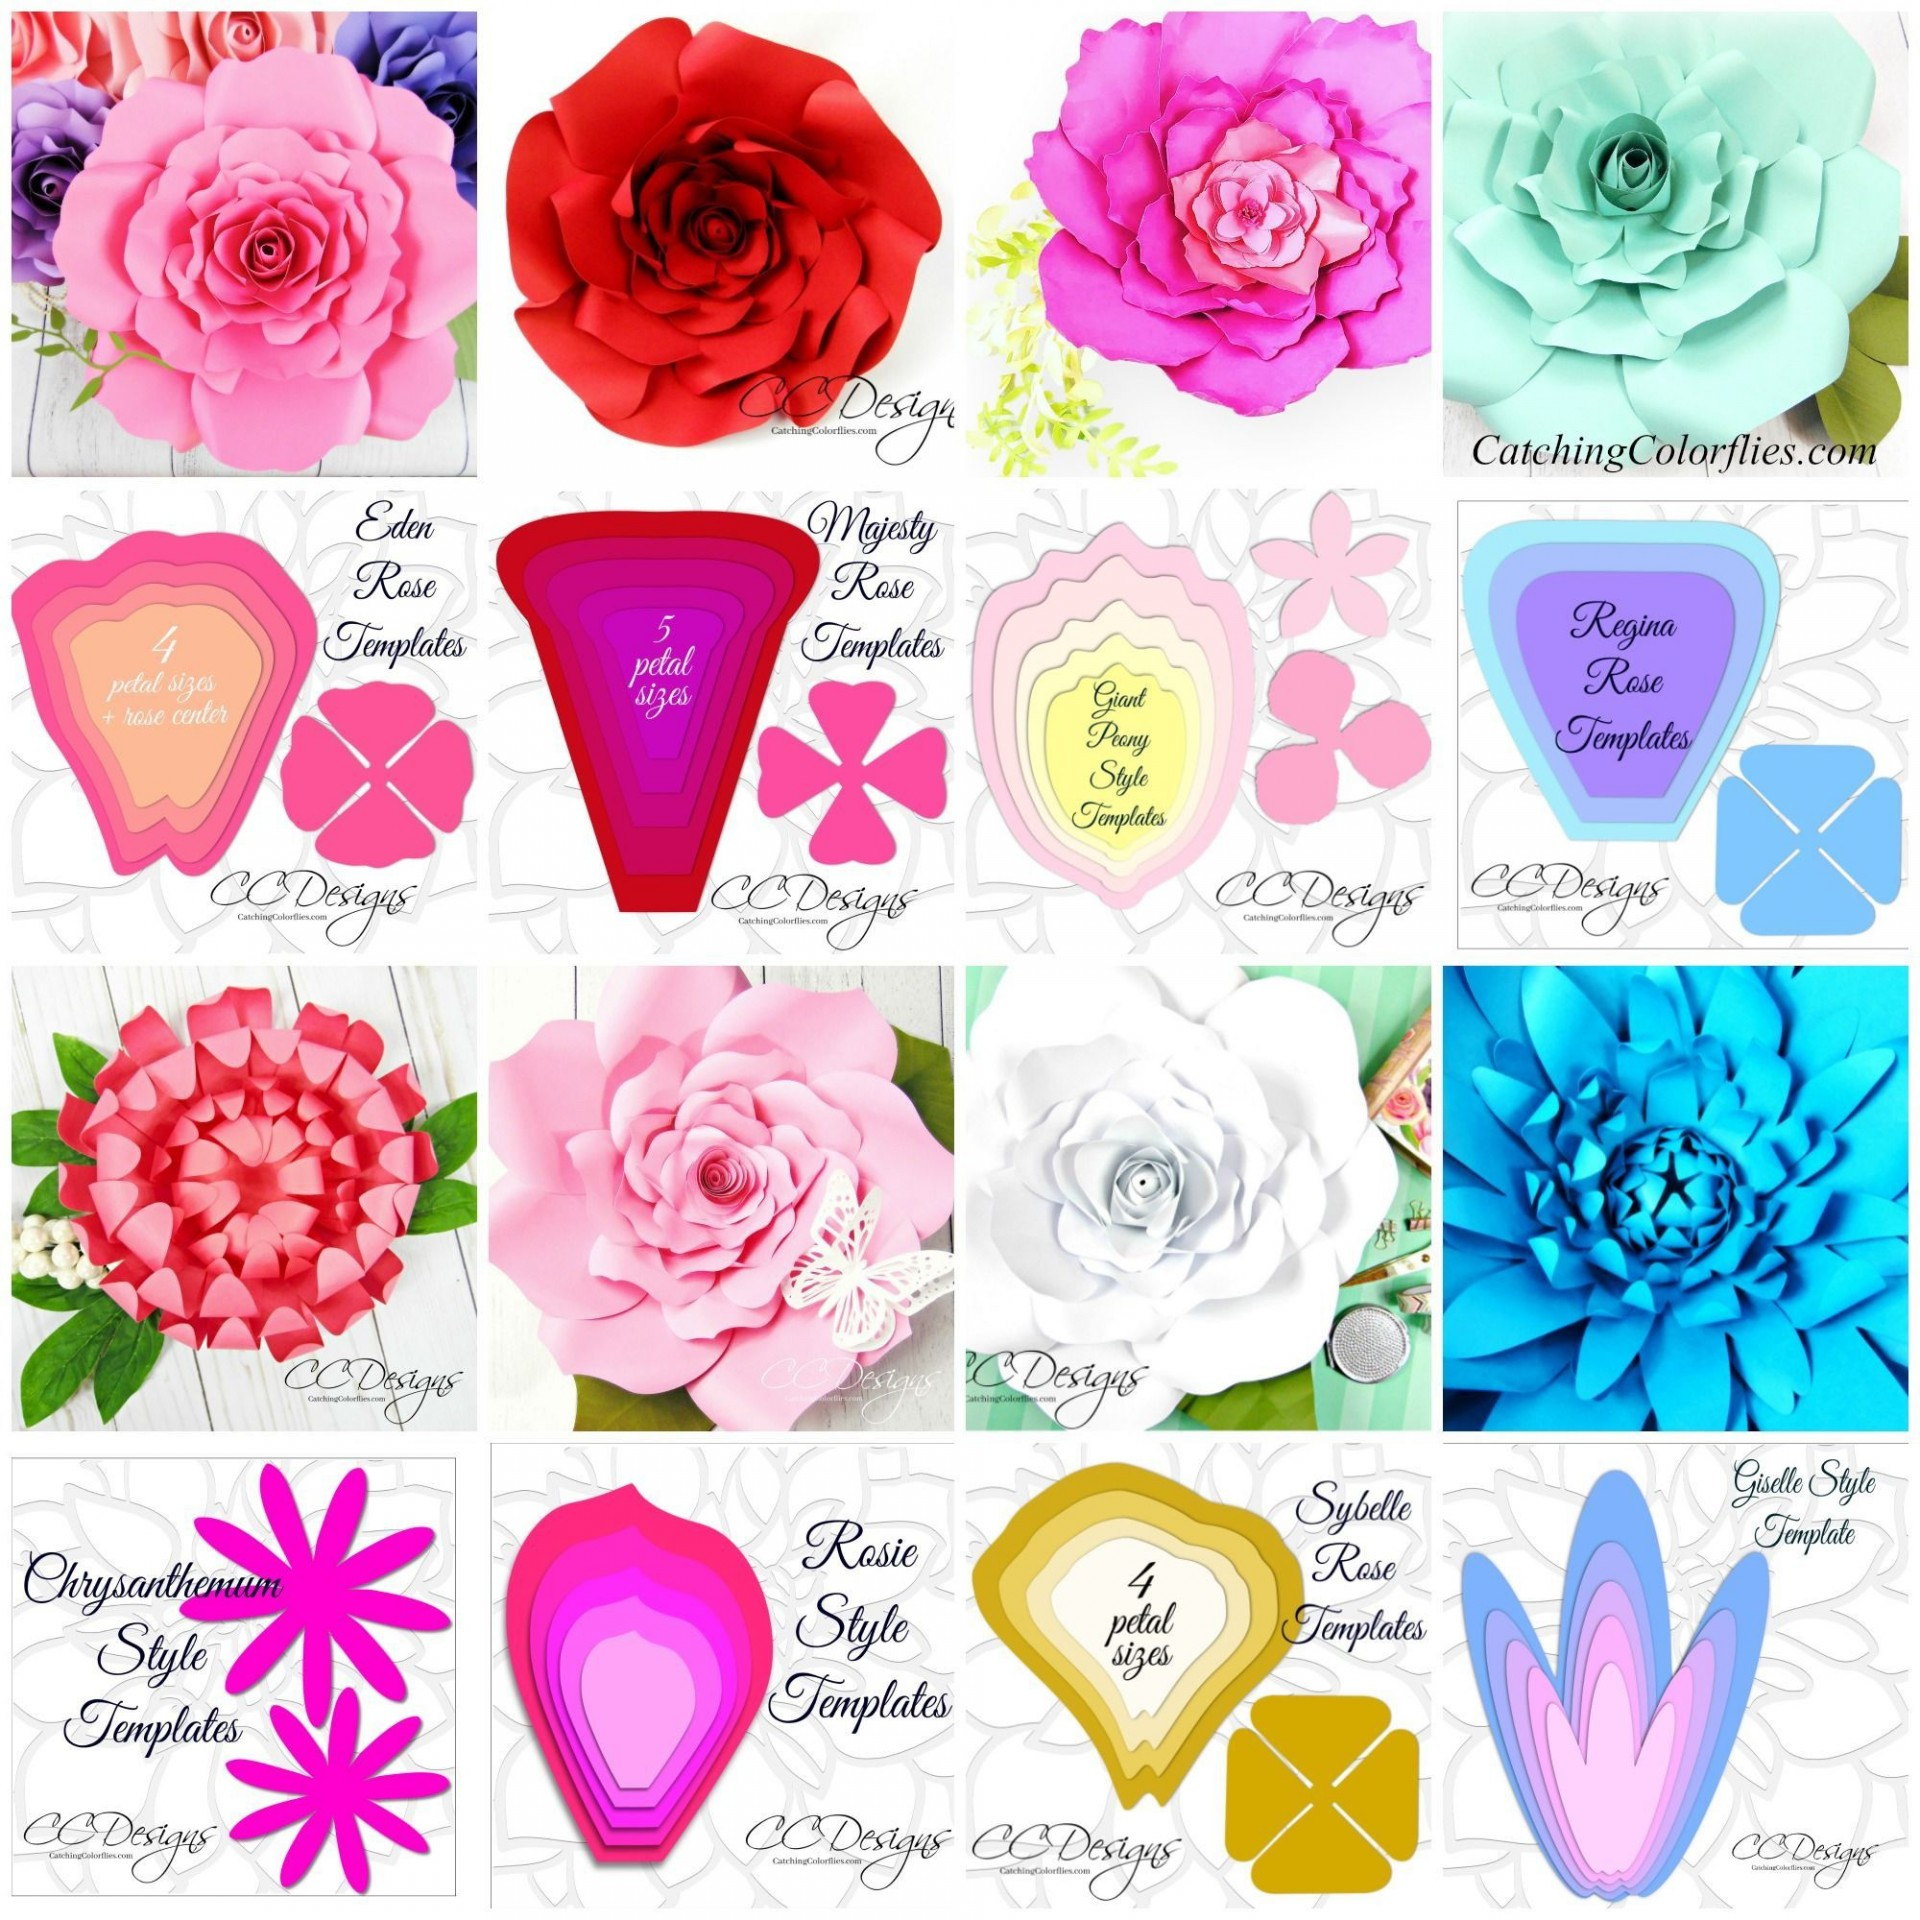 000 Wondrou Giant Rose Paper Flower Template Free High Def 1920